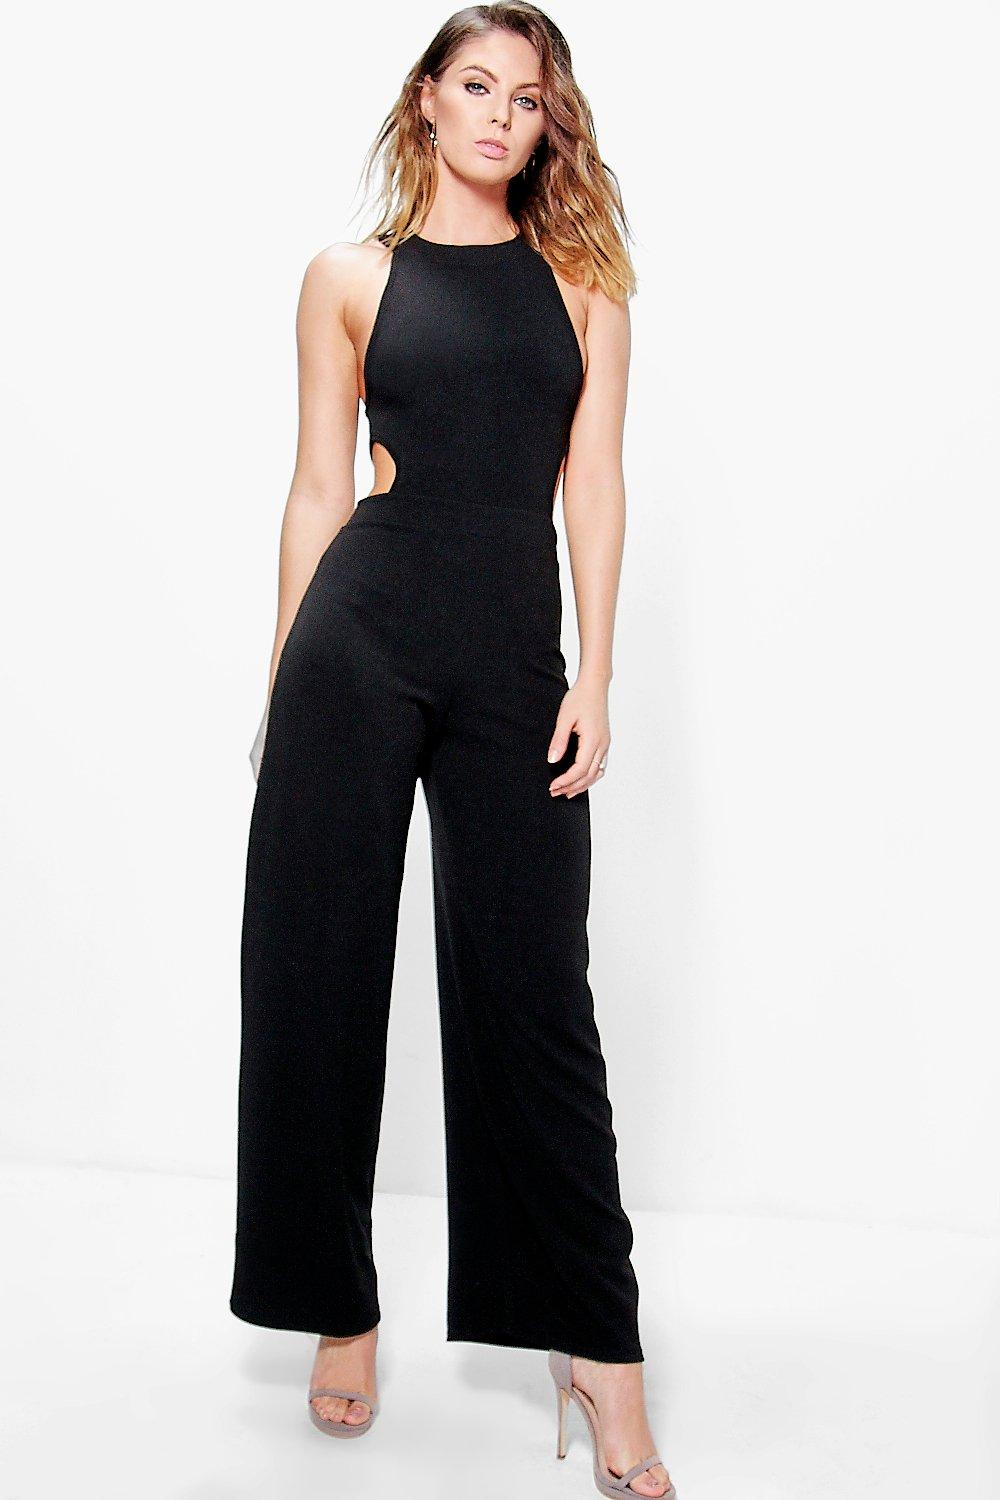 Nia High Neck Cut Out Side Jumpsuit